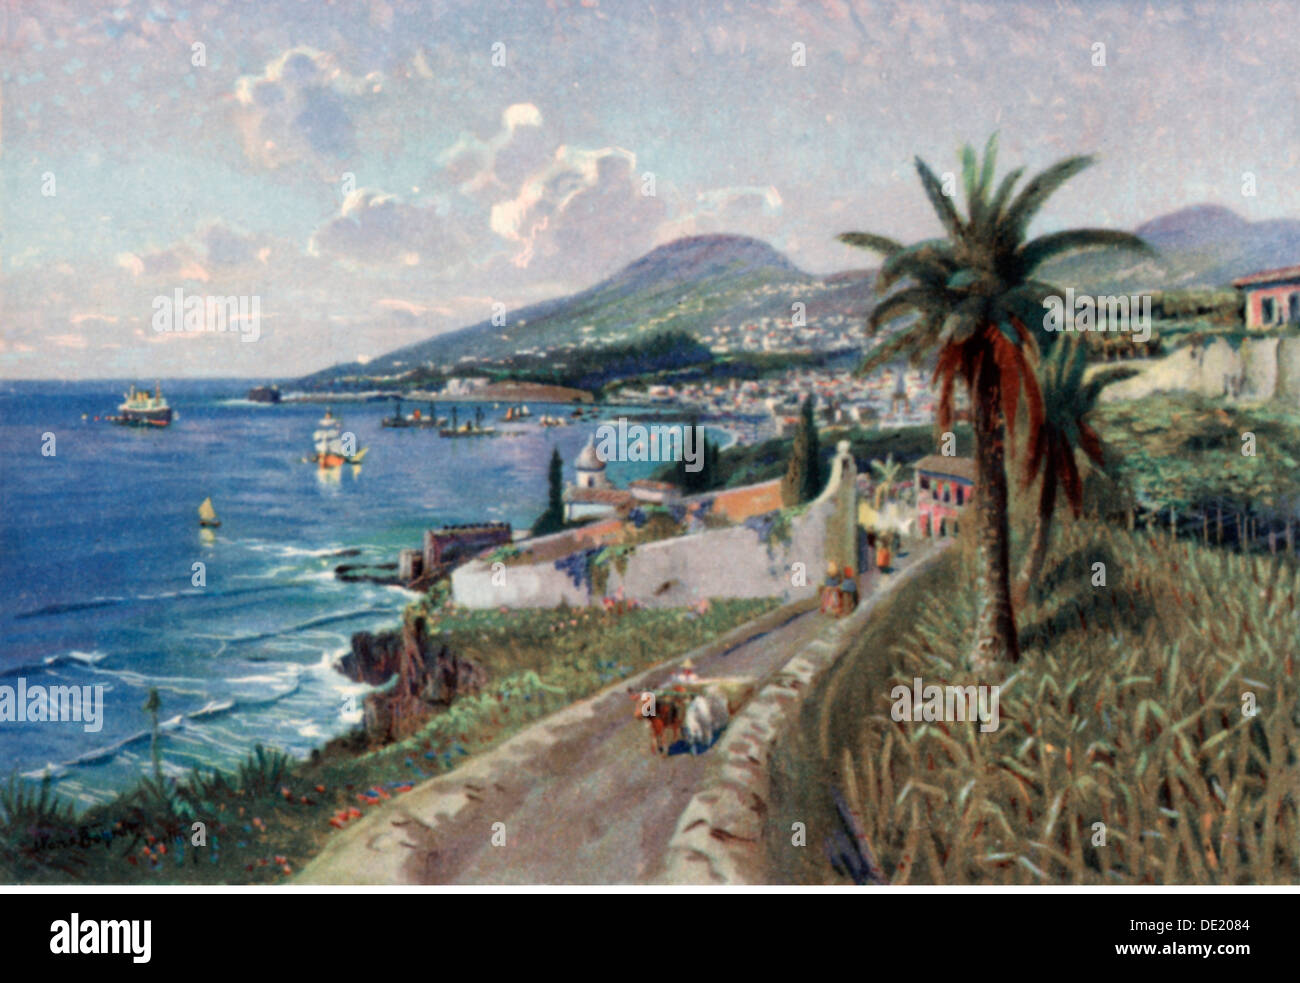 Geografia / viaggi, Portogallo, Isola di Madeira, Funchal, visualizzare l'arte cartolina, 1920s, Additional-Rights Foto Stock